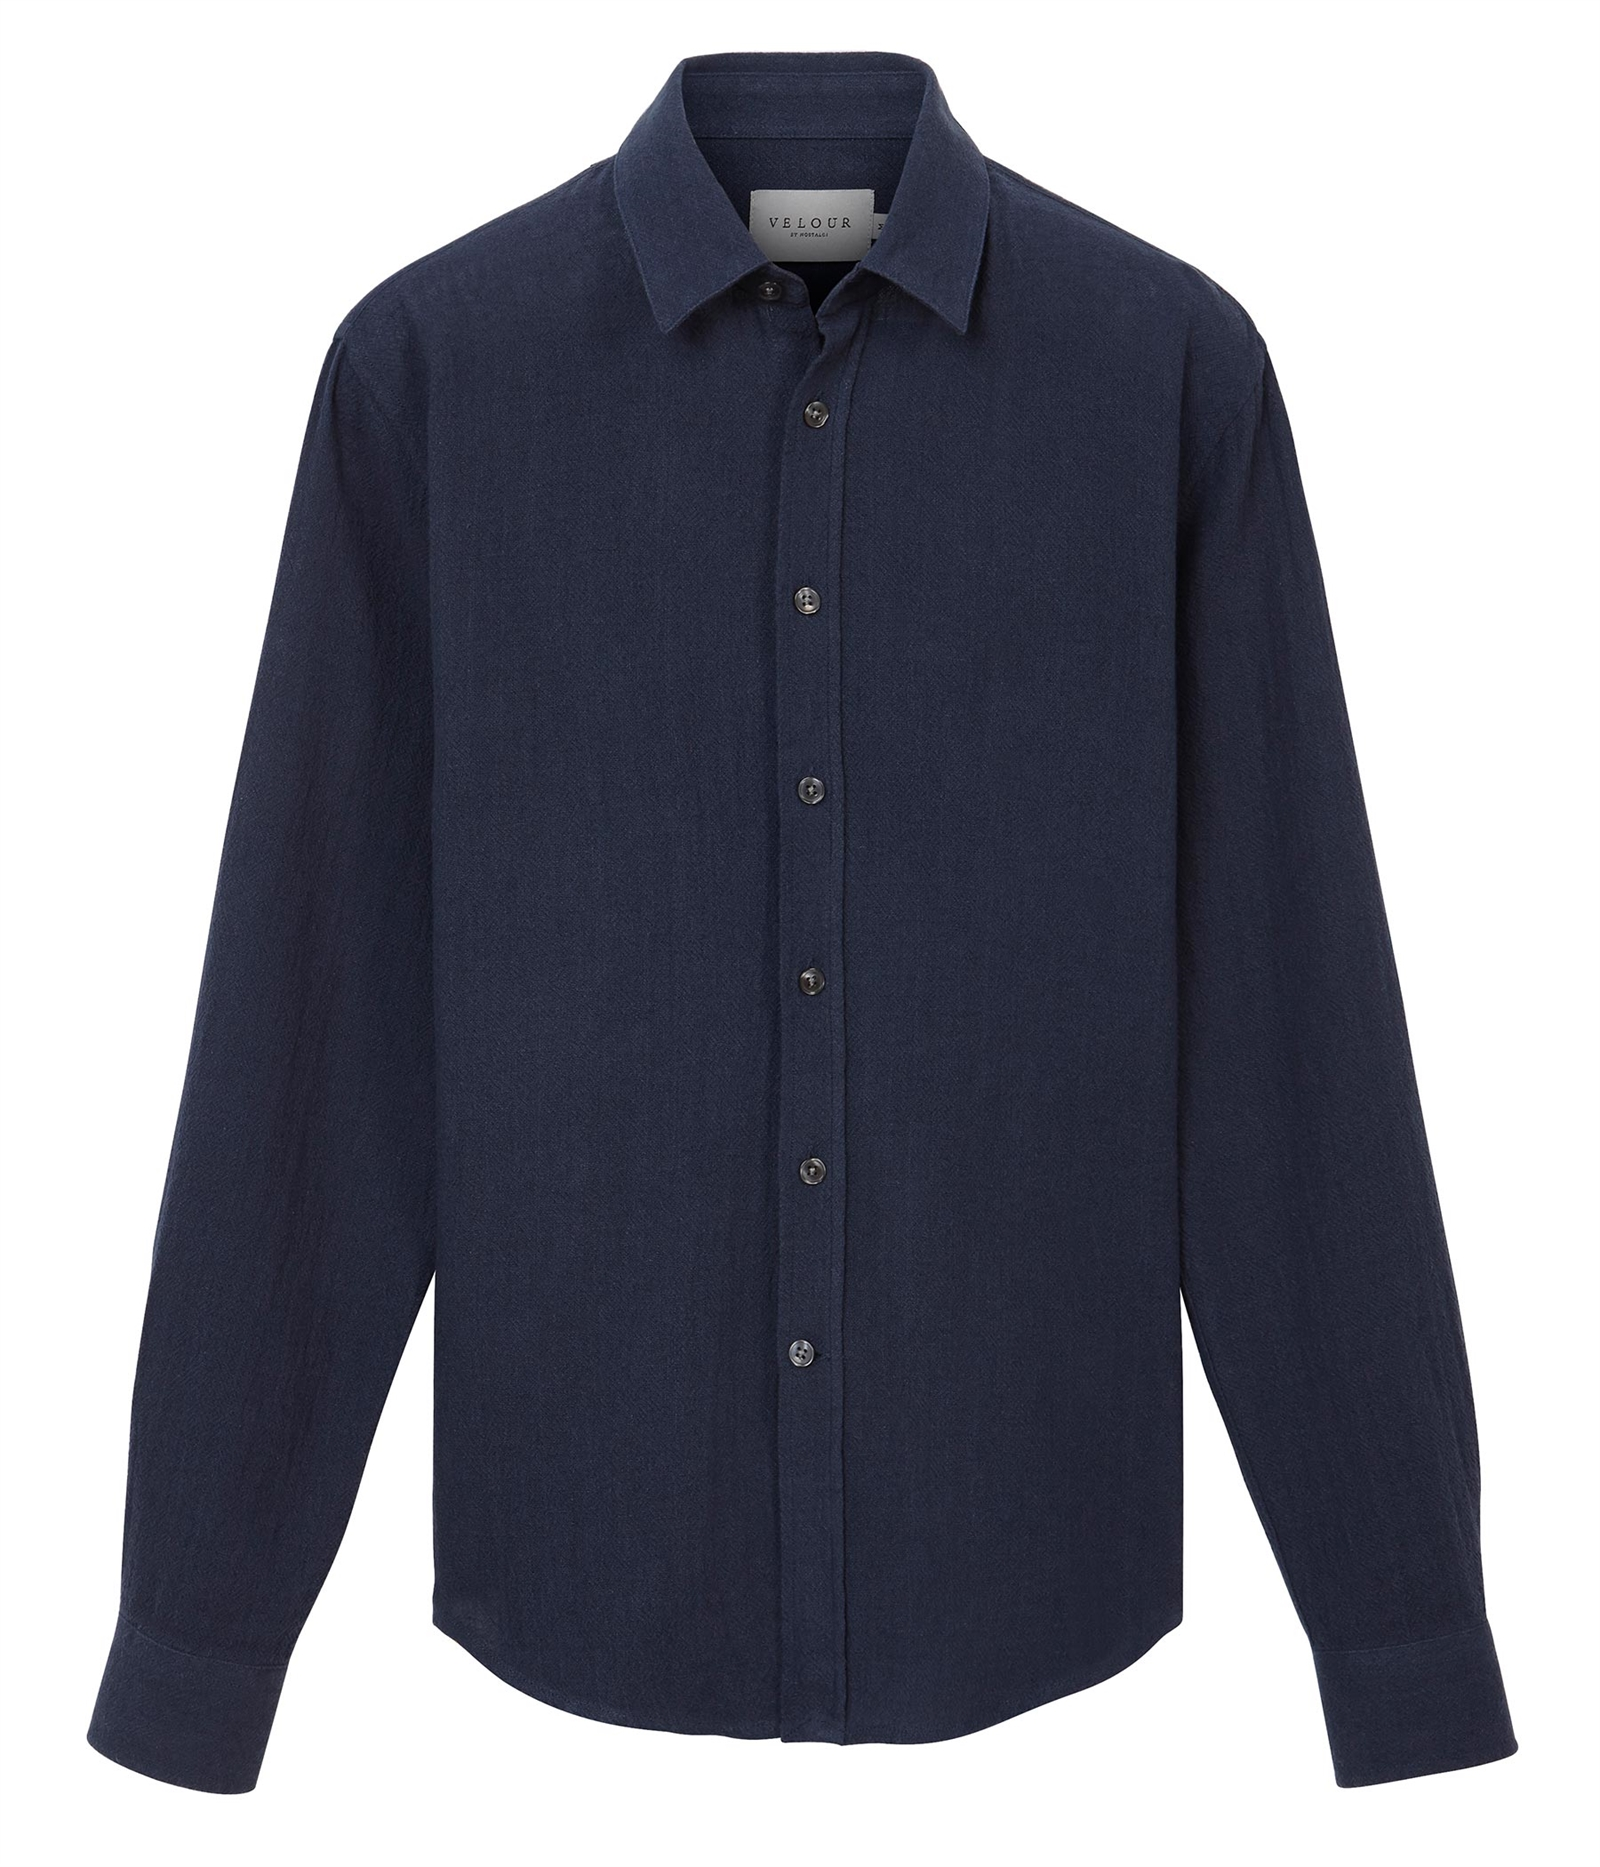 VBN_Standard_Washed_Crincle_Shirt_Washed_Navy_3802000208_1800x2100